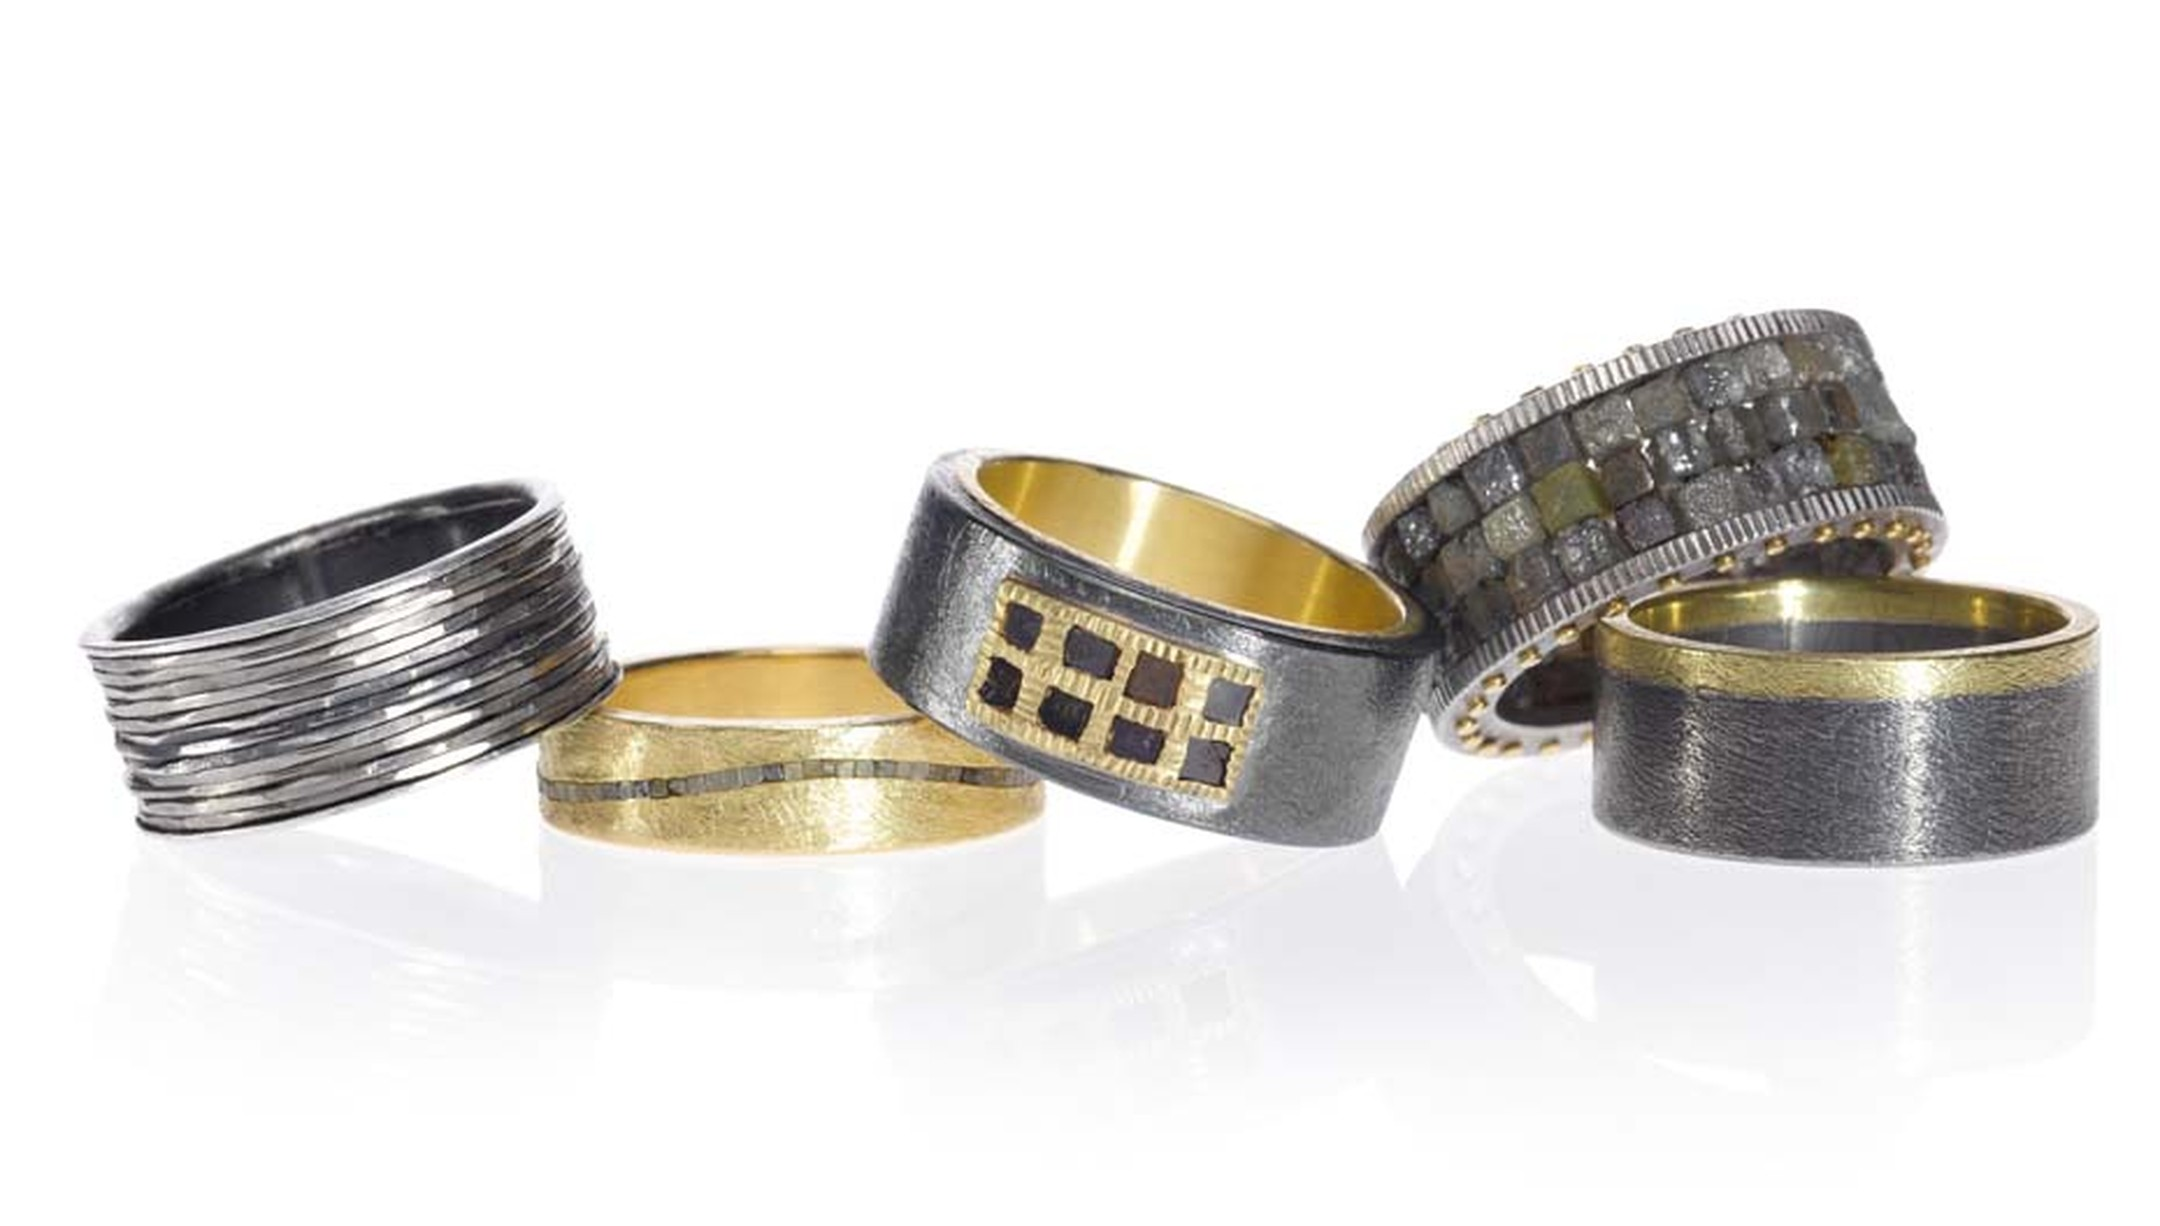 Todd Reed's new Men's Jewelry Collection features more than 600 pieces including belt buckles, rings, bracelets and dog tags as well as the more traditional men's accessory, the cufflink.